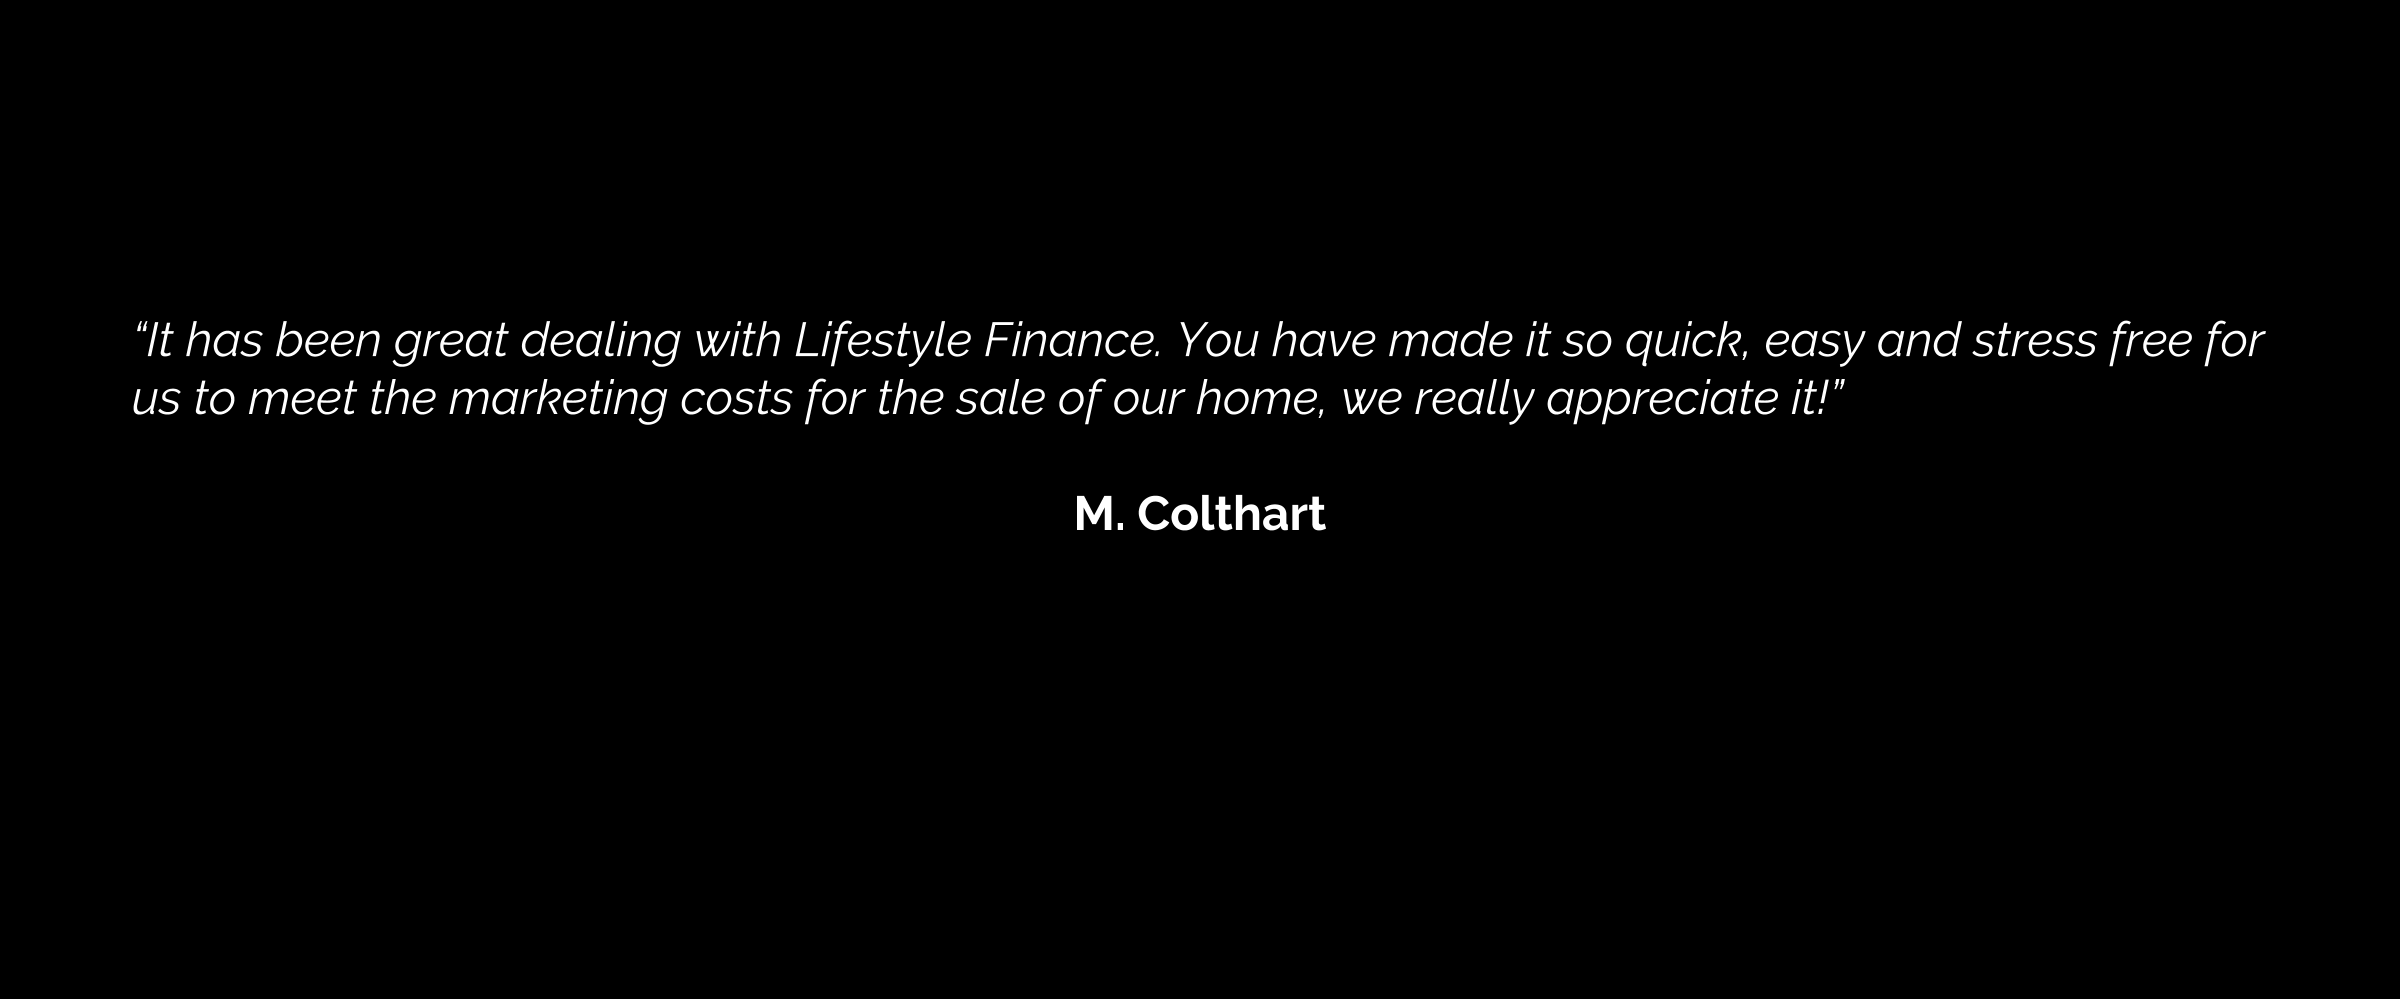 M Colthart Testimonial.png